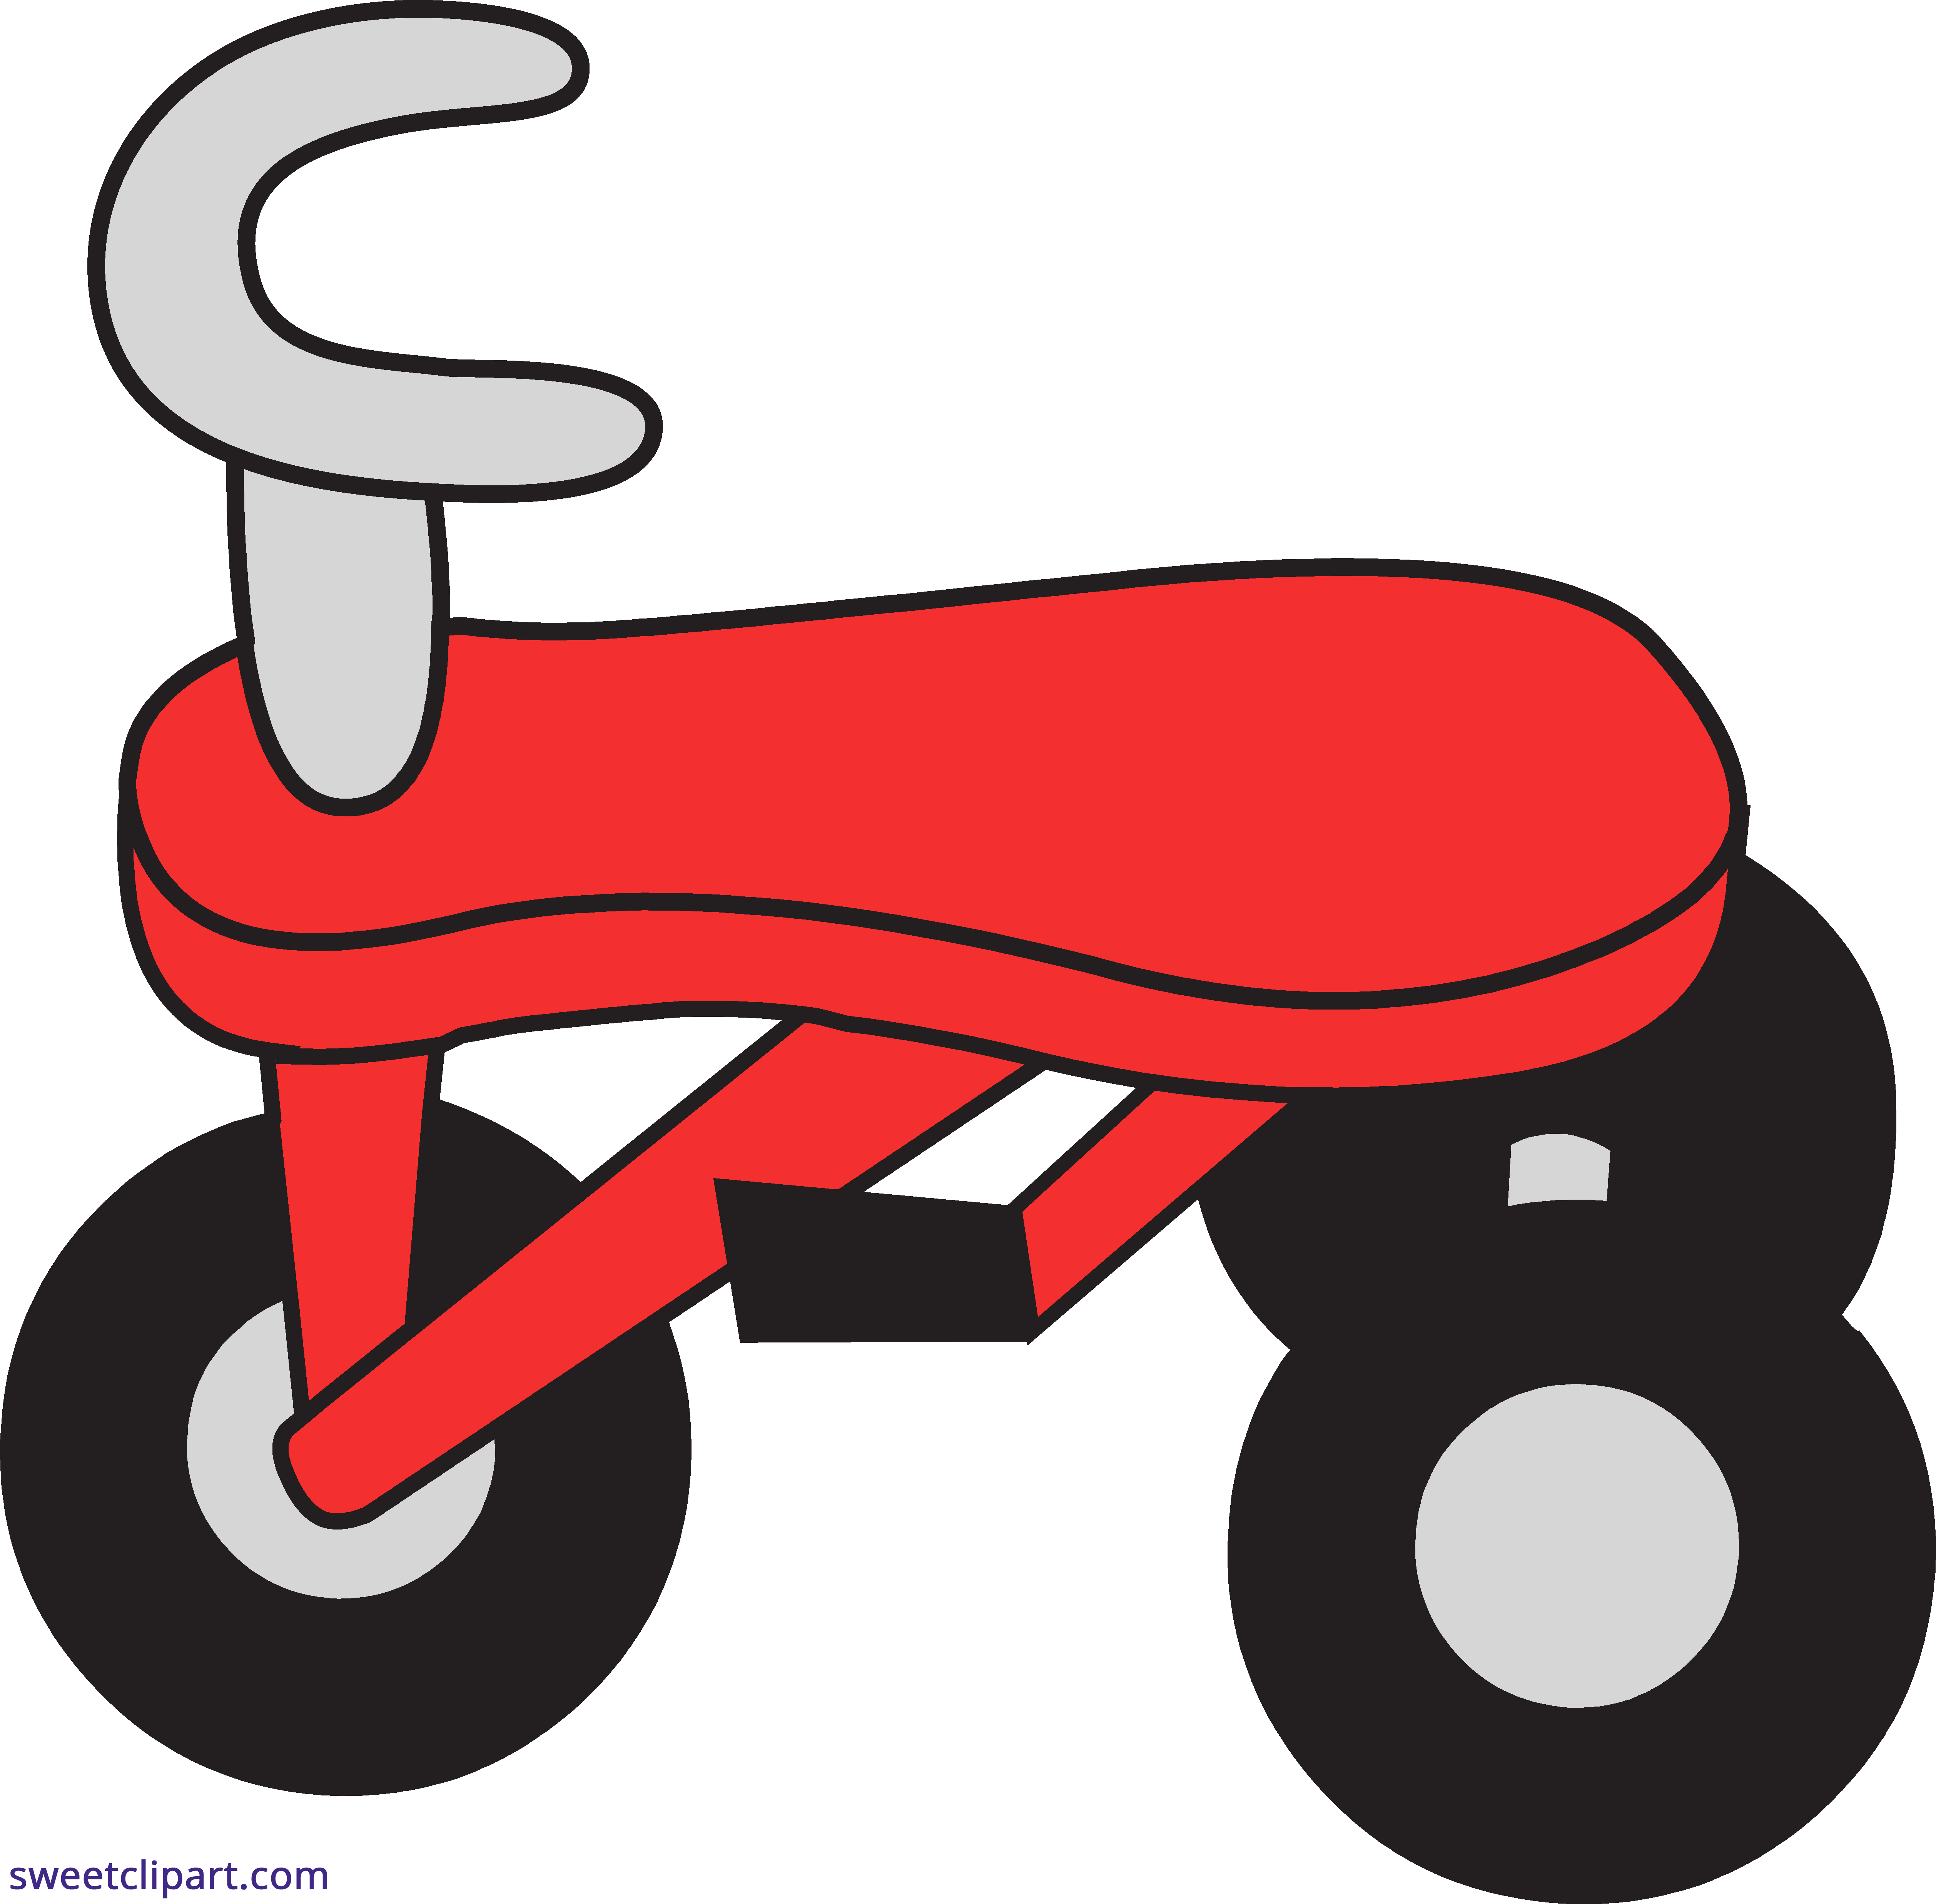 image transparent stock Tricycle clipart. Red sweet clip art